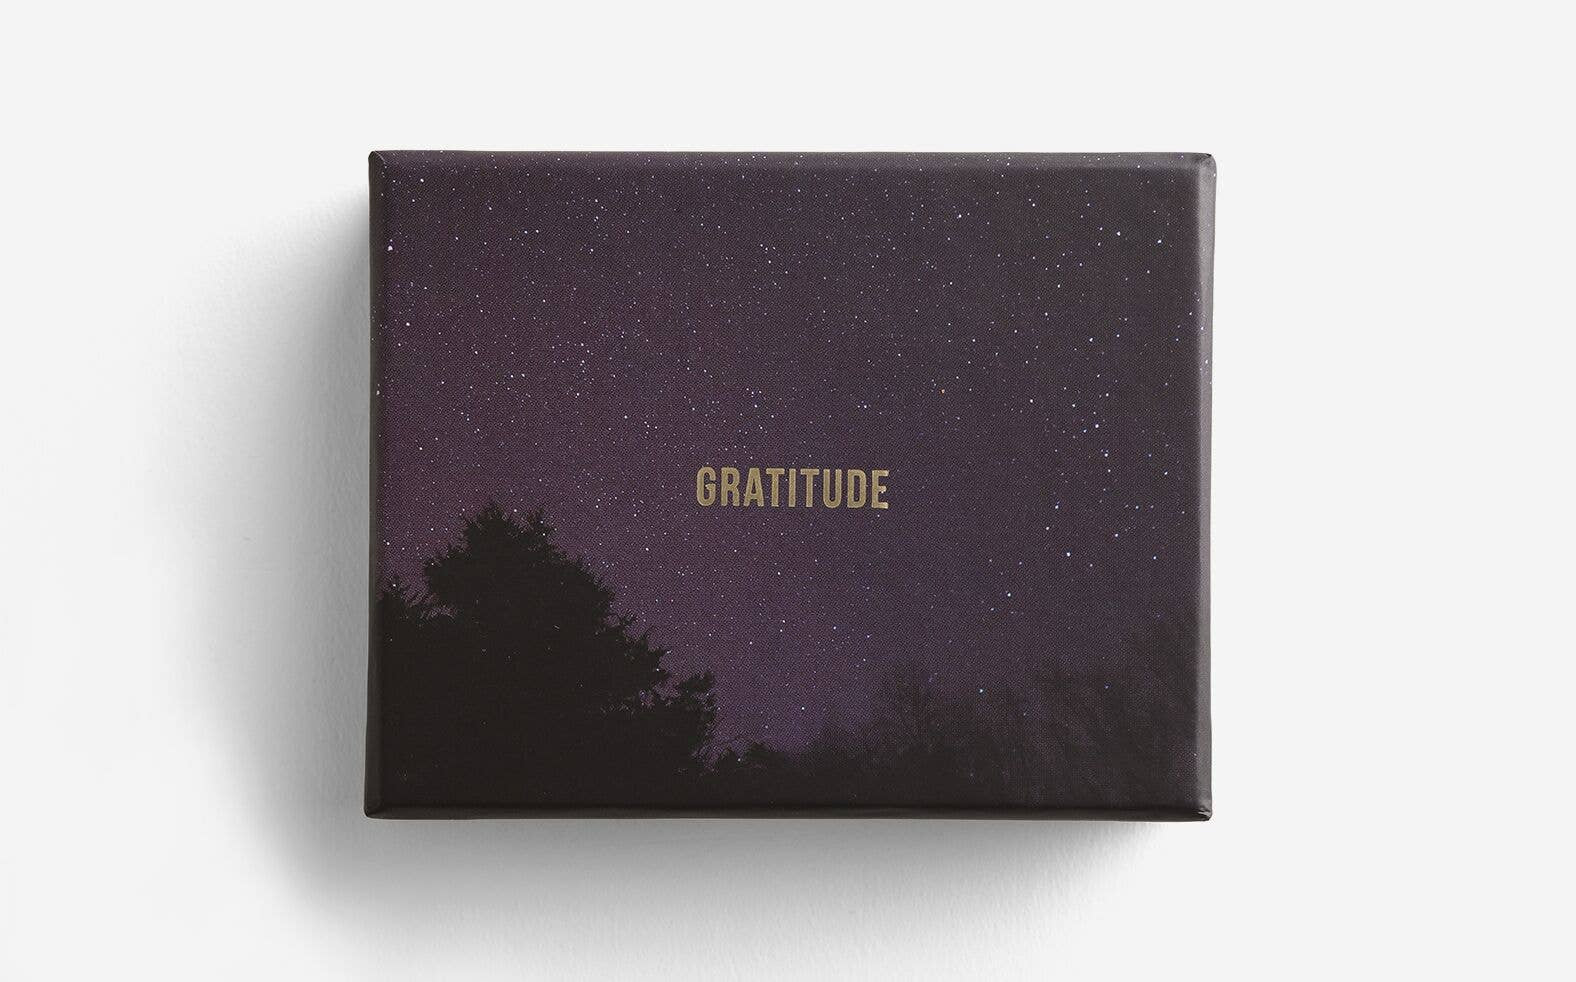 Gratitude Card Set by The School of Life